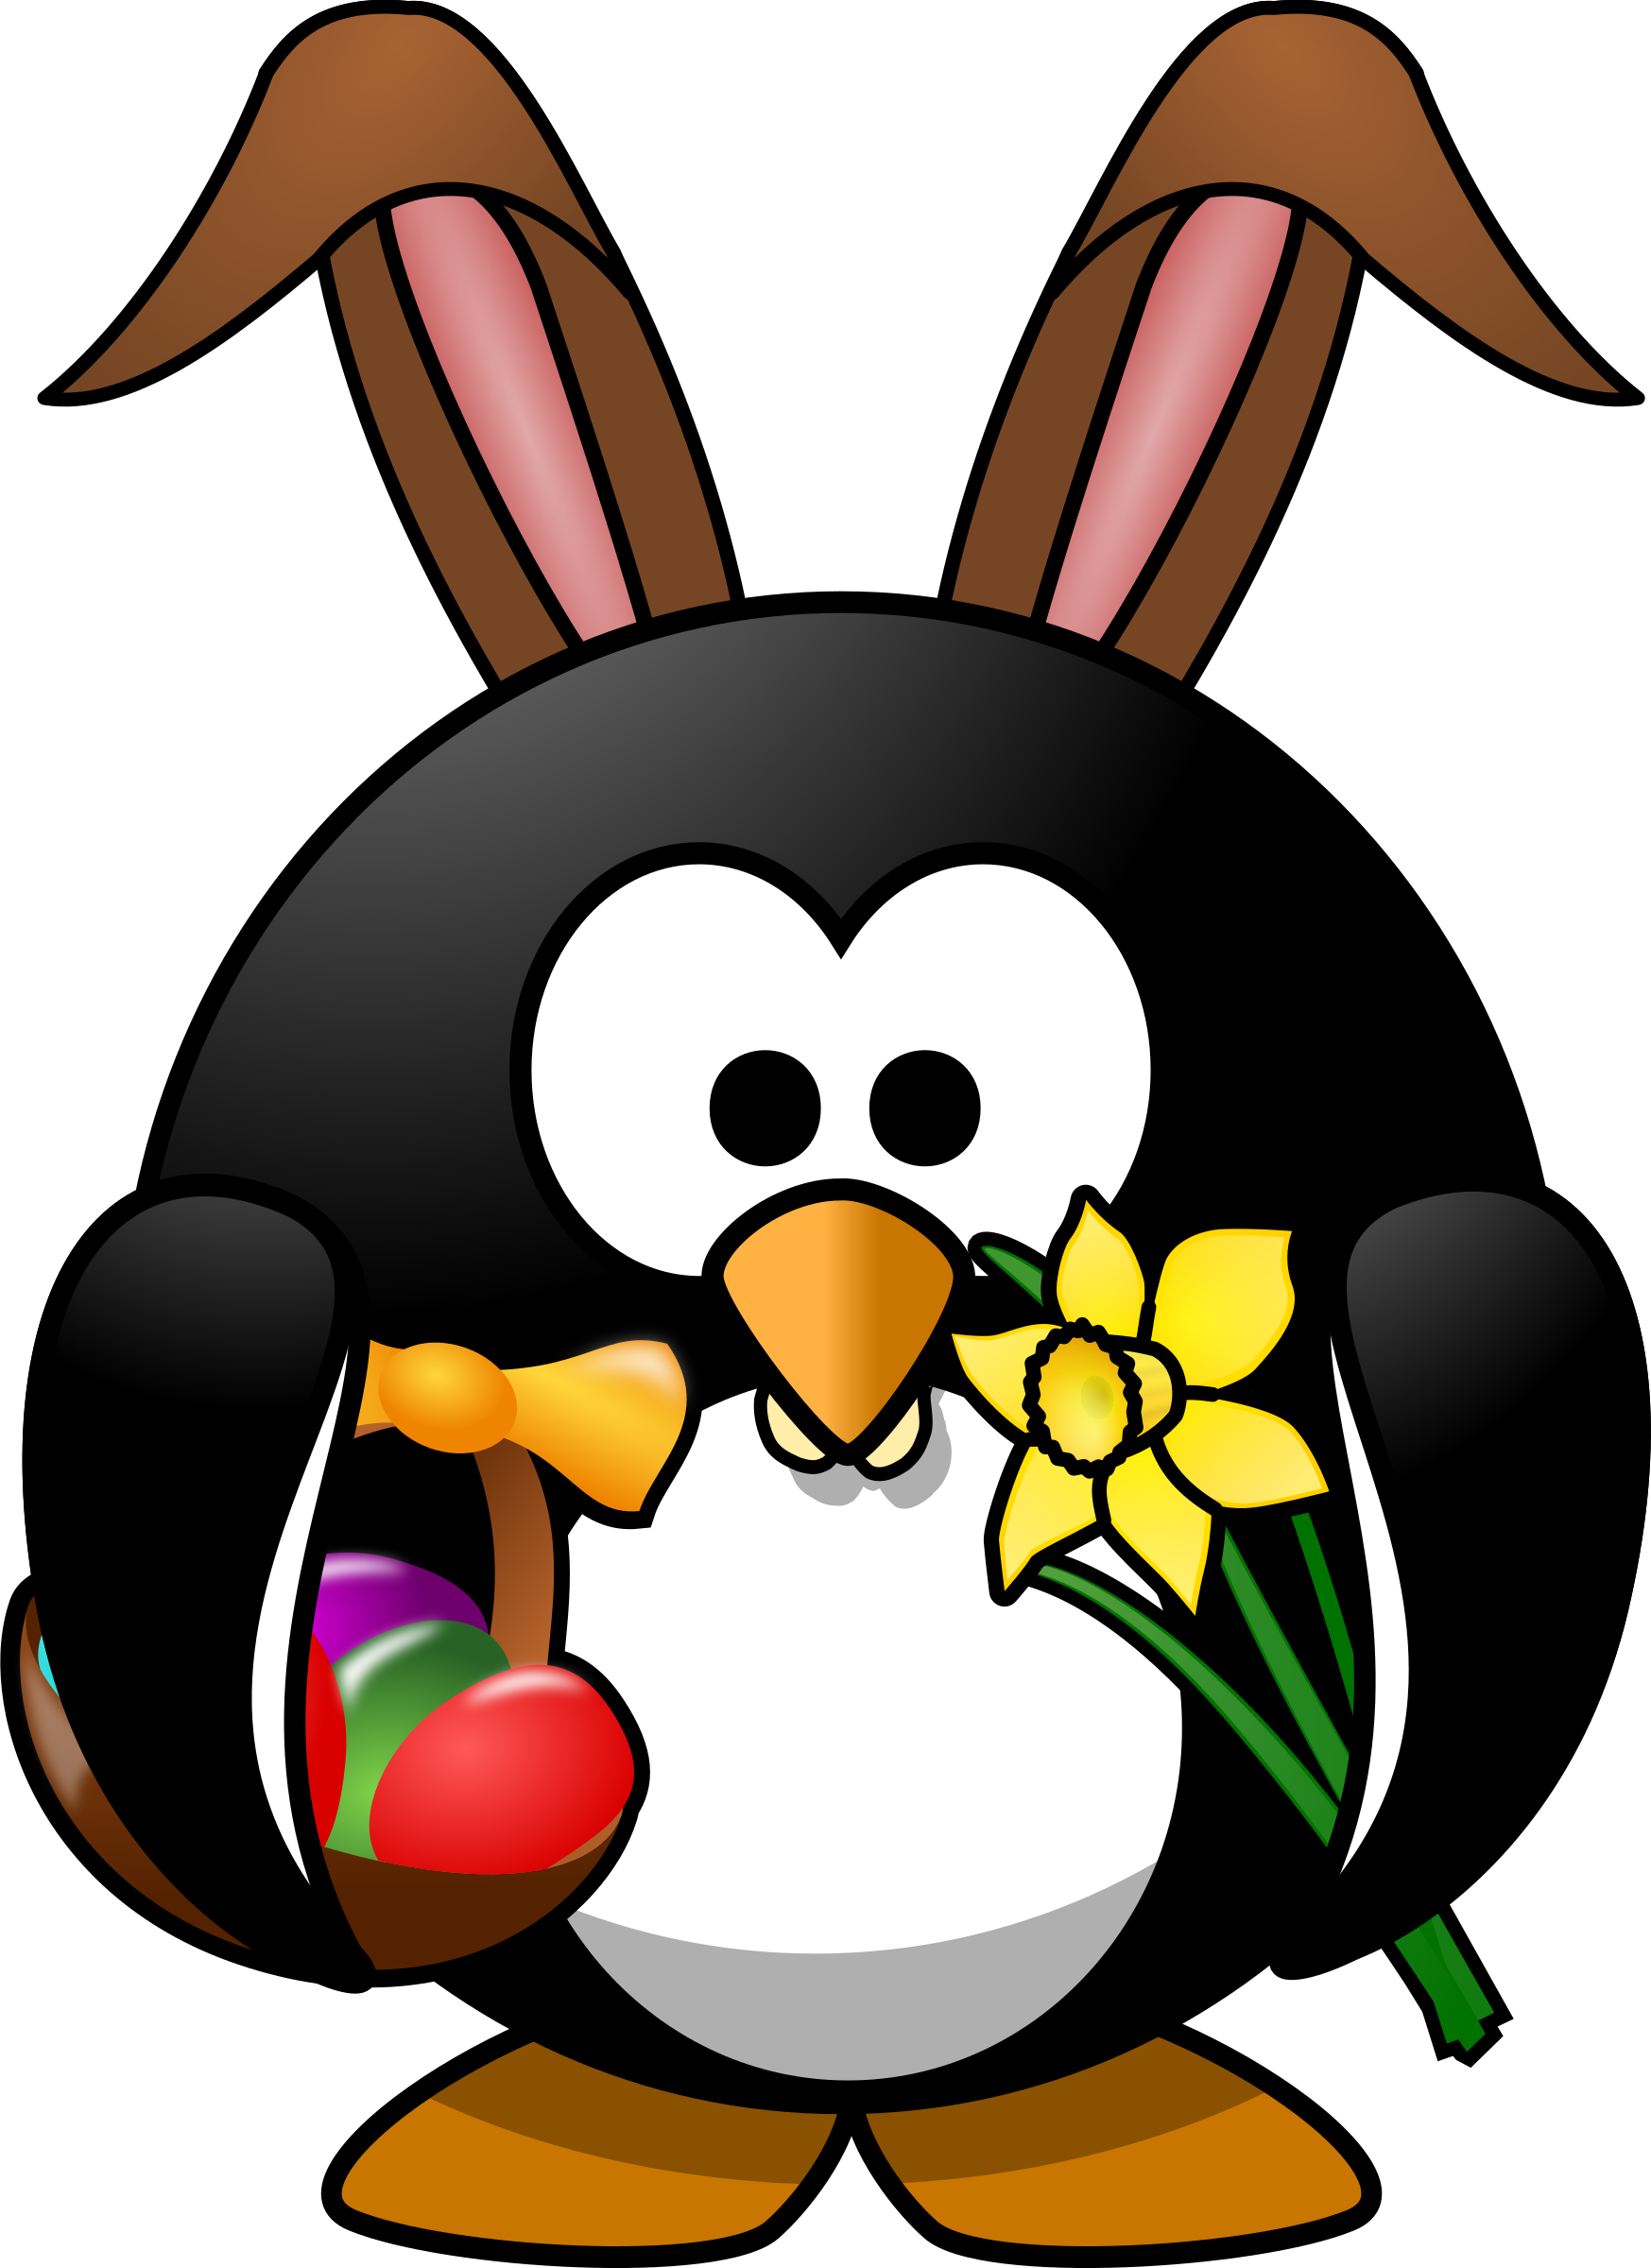 Bunny at getdrawings com. Clipart spring penguin